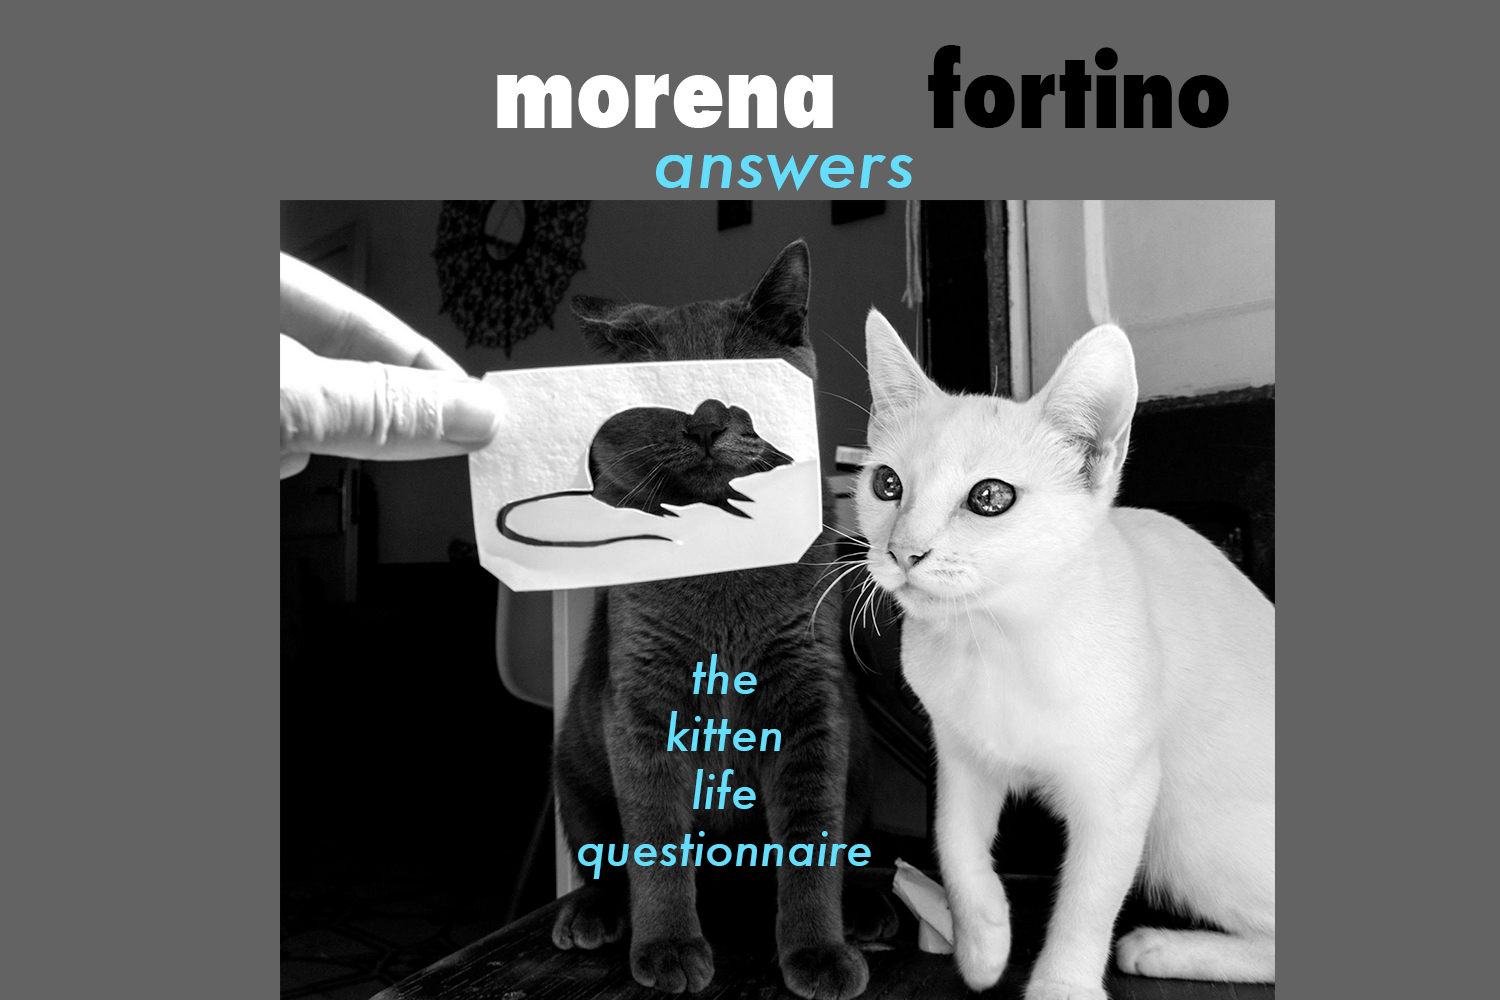 morena fortino, la chatte, fantastic bestiary, proust questionnaire, the kitten life, canadian blogger